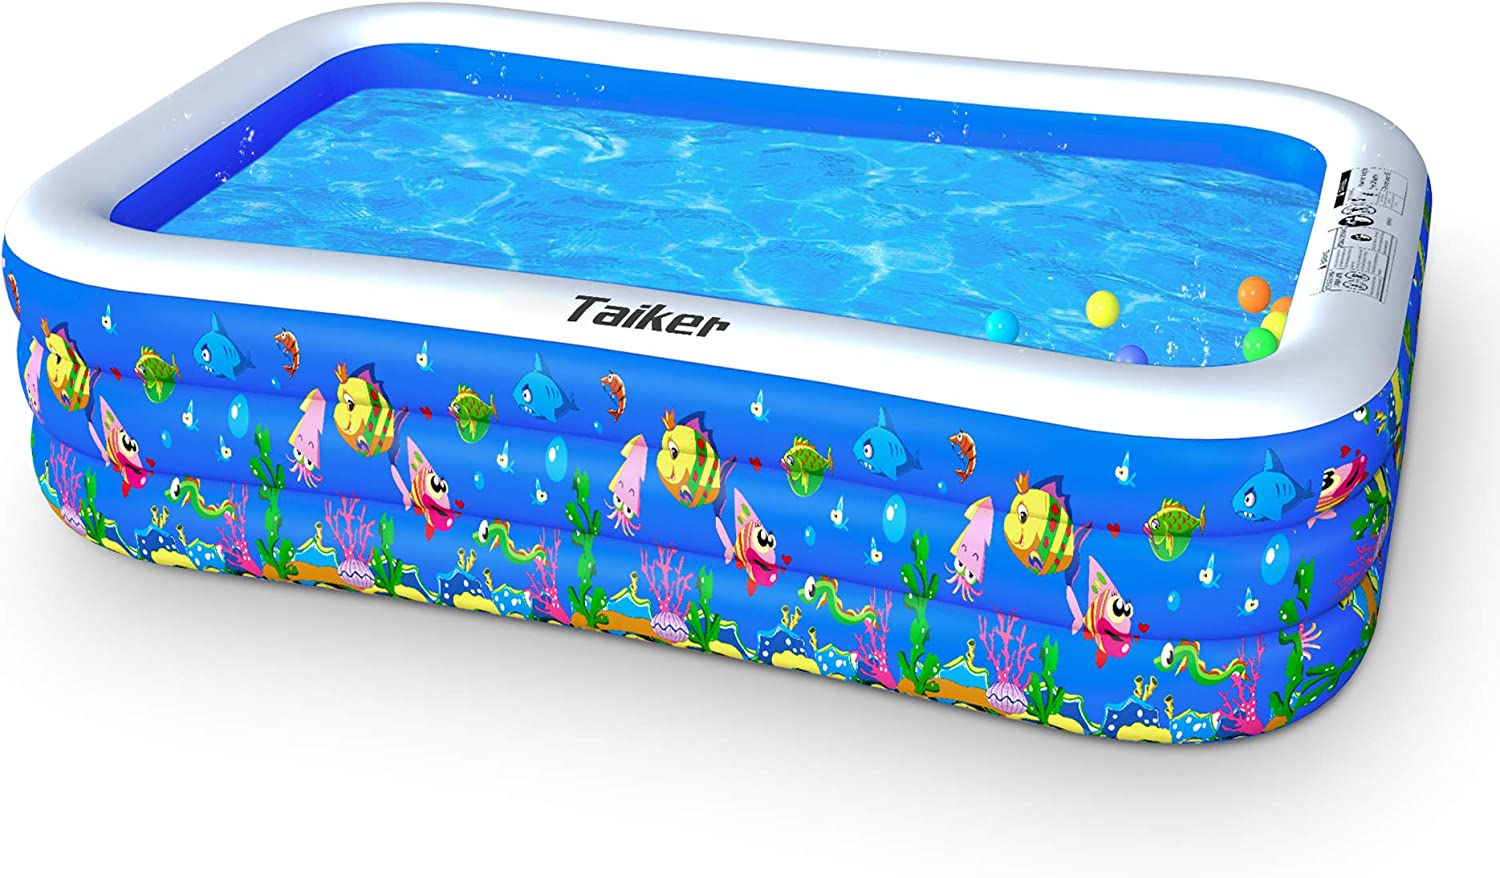 Taiker Inflatable Swimming Pools Kiddie Pools Family Lounge Pools 96 X 57 X 21 Large Family Swimming Pool For Kids Adults Babies Toddlers Outdoor Garden Backyard 96 Kitchen Dining